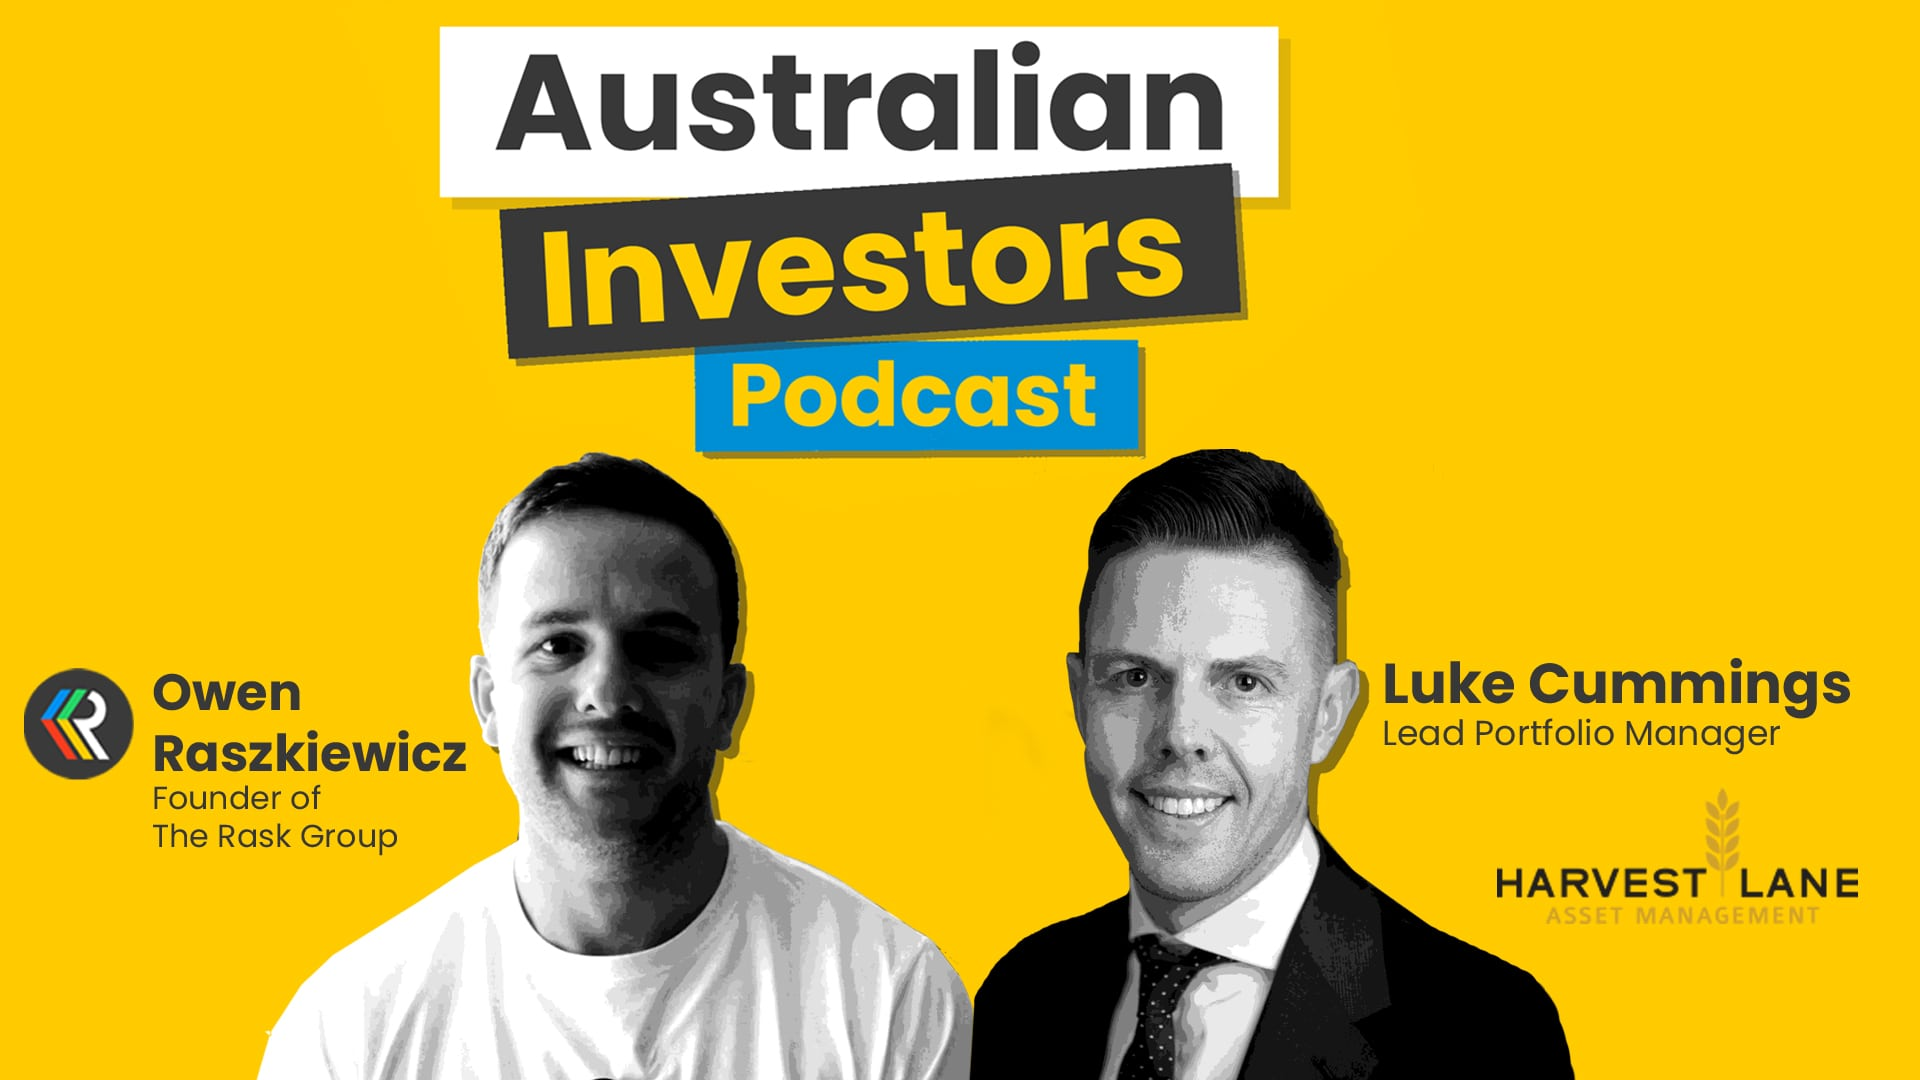 Luke Cummings Australian Investors Podcast